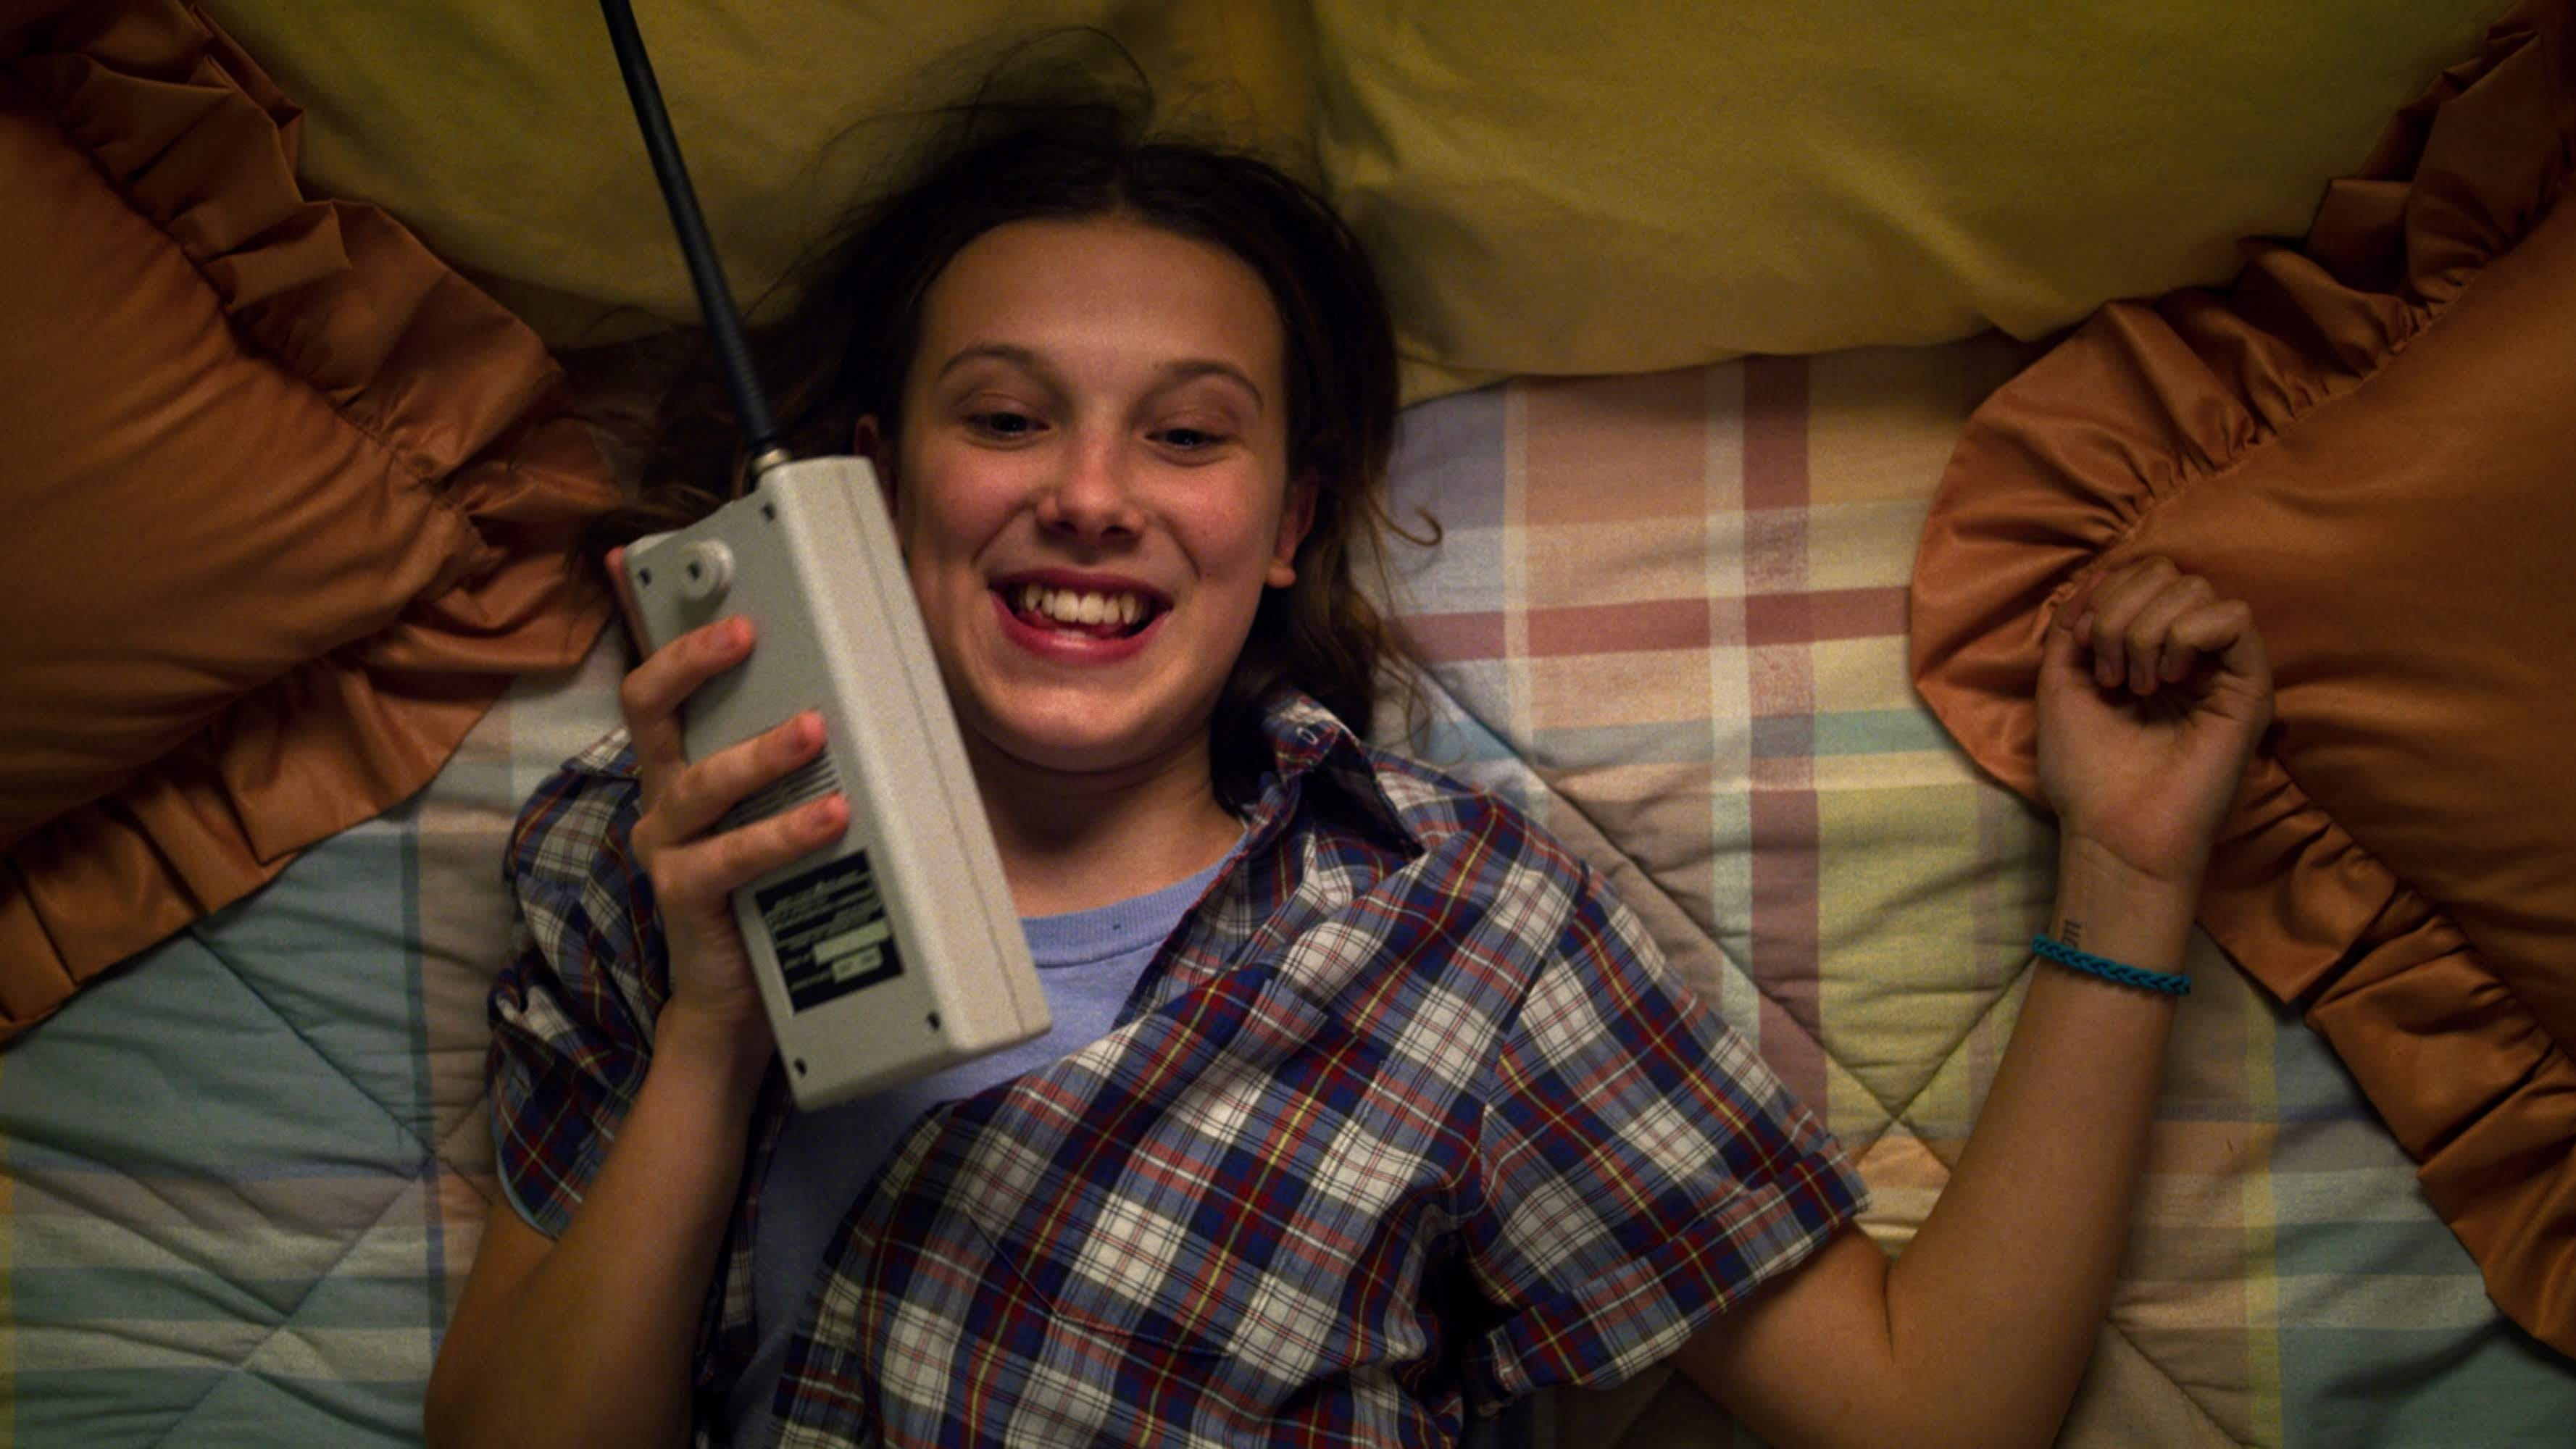 'Stranger Things 3' digs up songs from '80s charts, movies